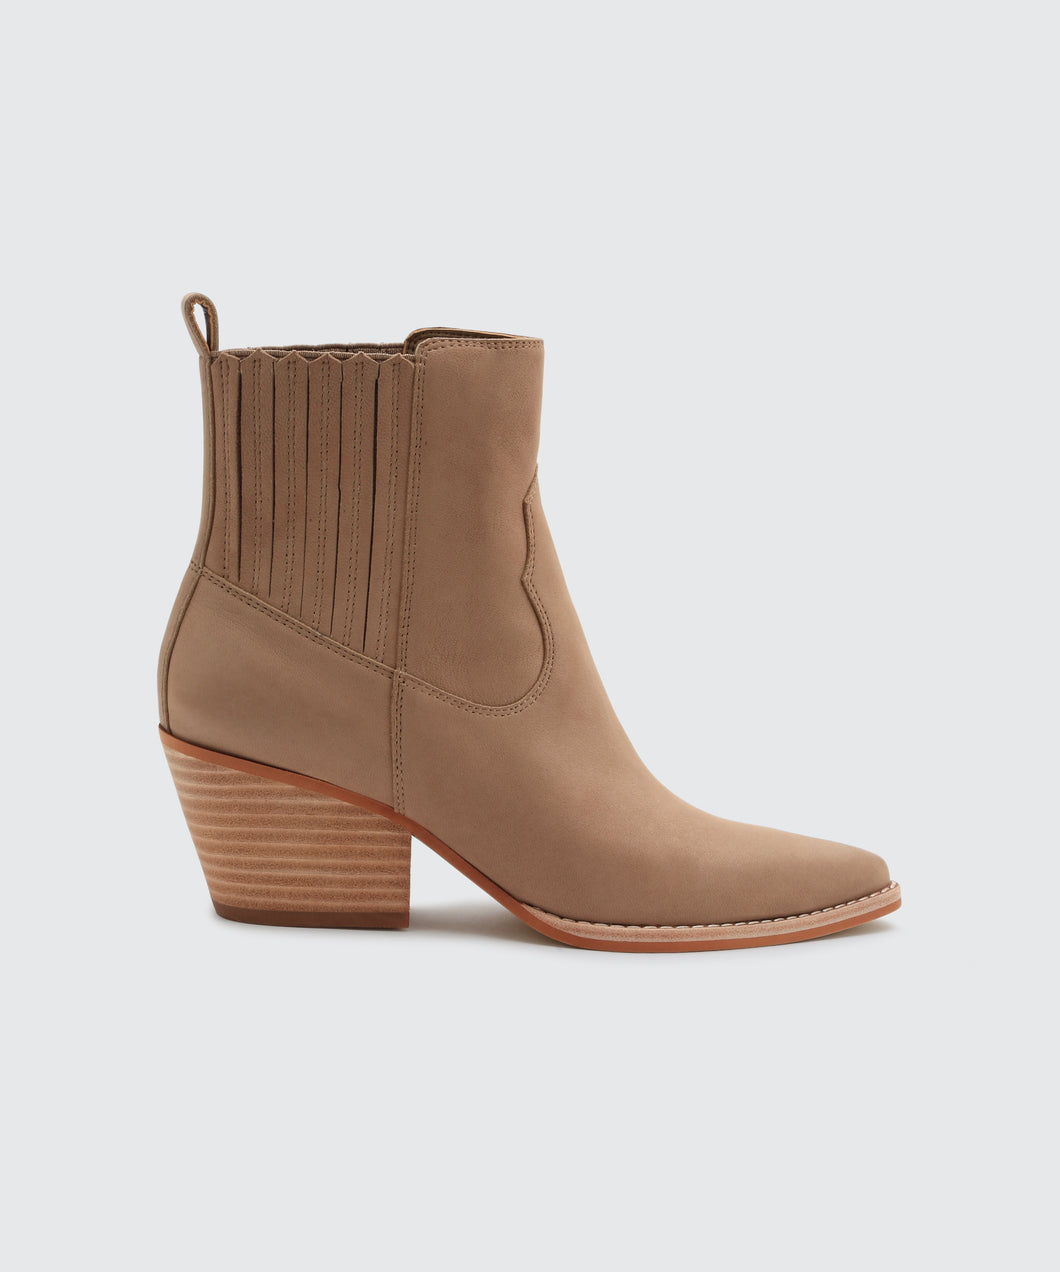 SUVI BOOTIES LIGHT TAUPE -   Dolce Vita